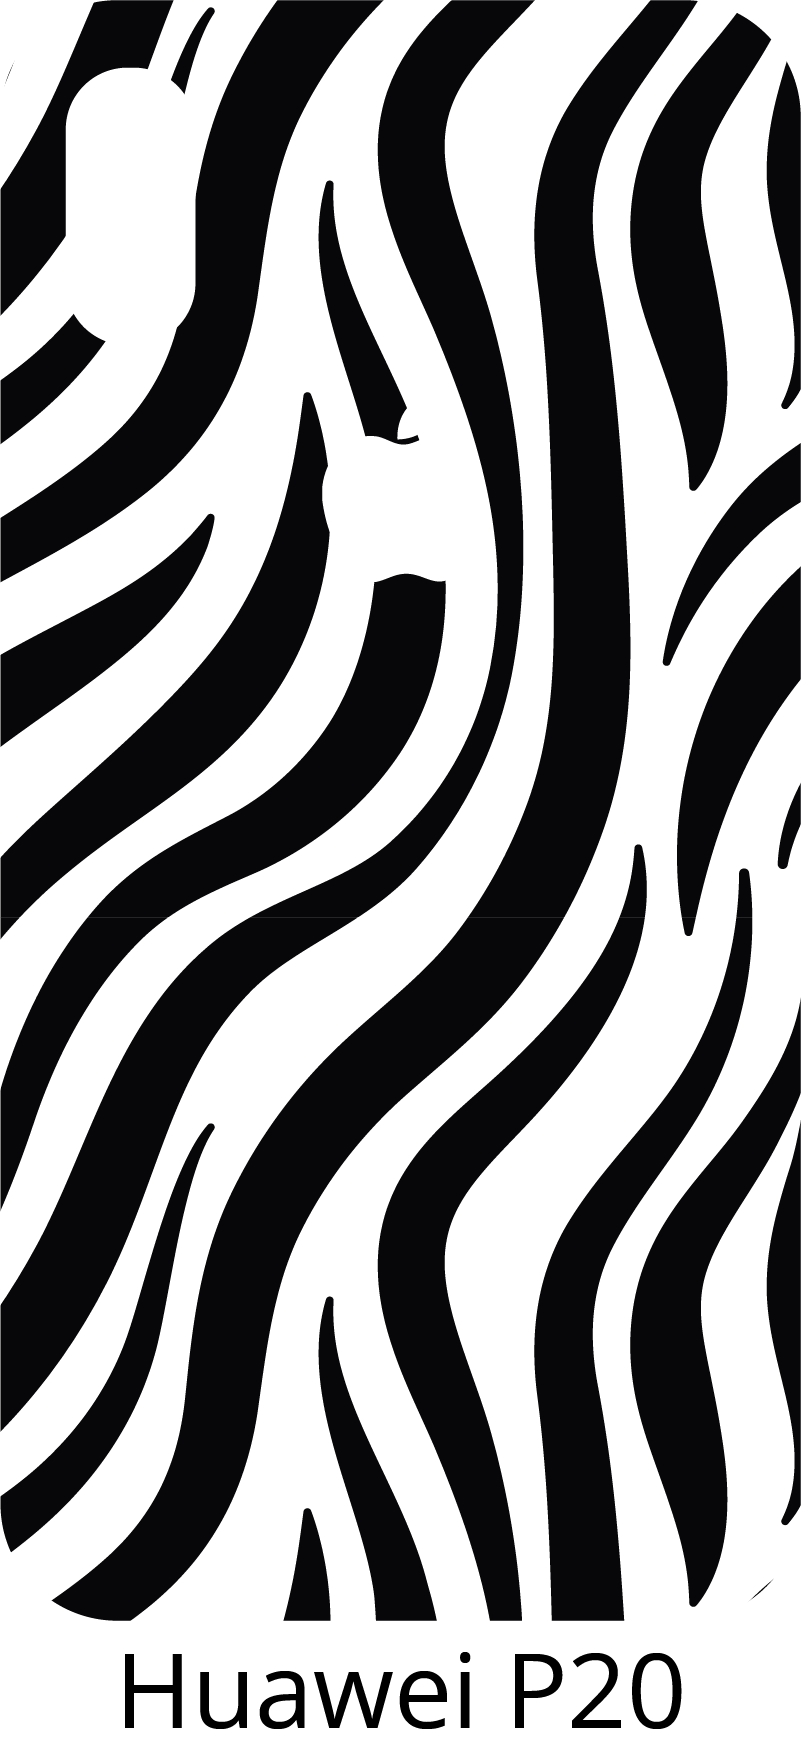 TenStickers. Zebra Texture Huawei Sticker. Decorate your Huawei with this fantastic zebra skin themed phone sticker, ideal for those who want to stand out! Sign up for 10% off.